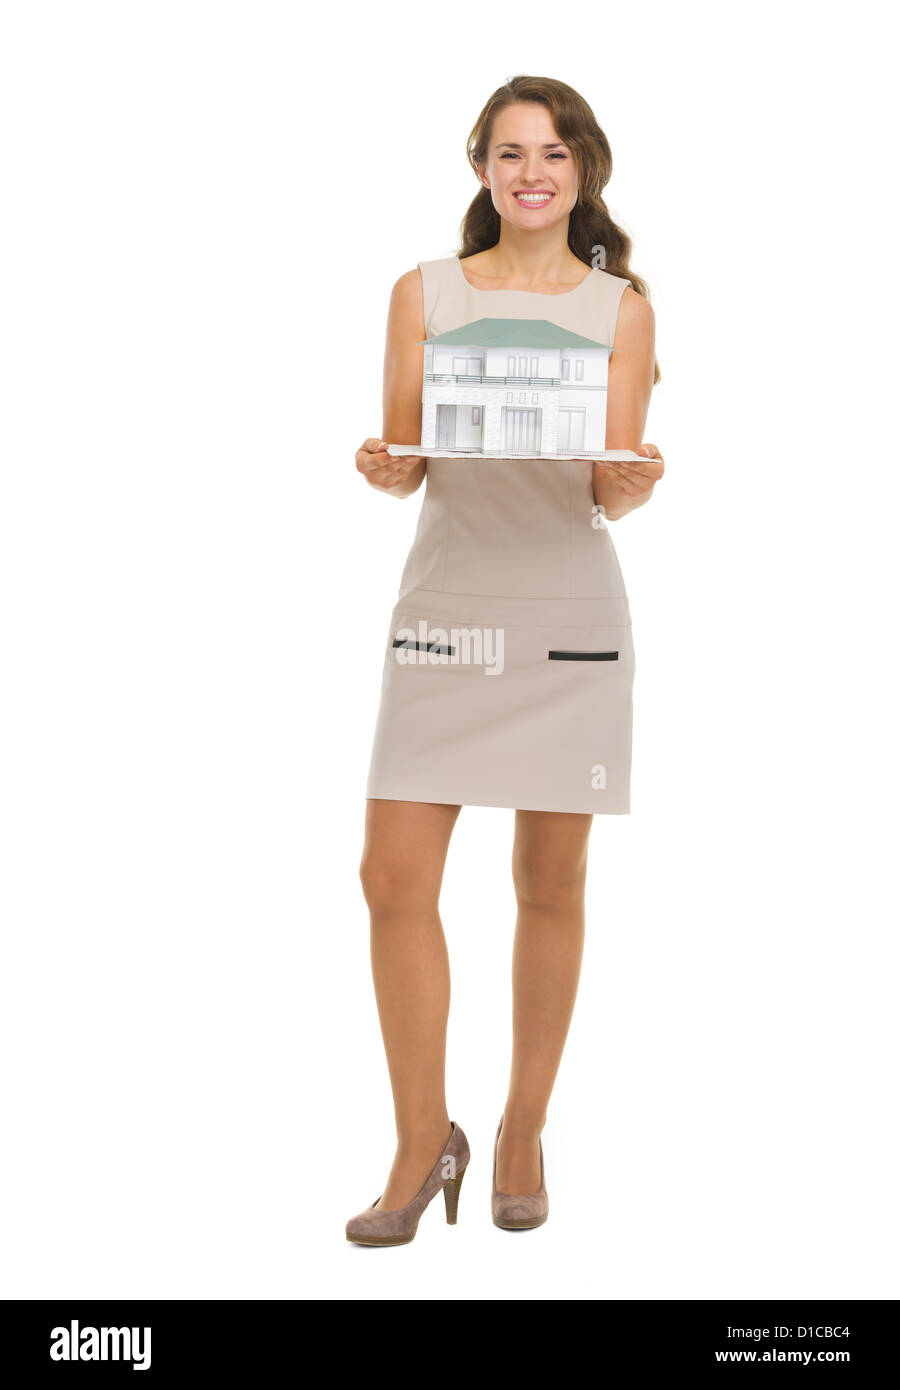 Happy woman homeowner showing scale model of house - Stock Image